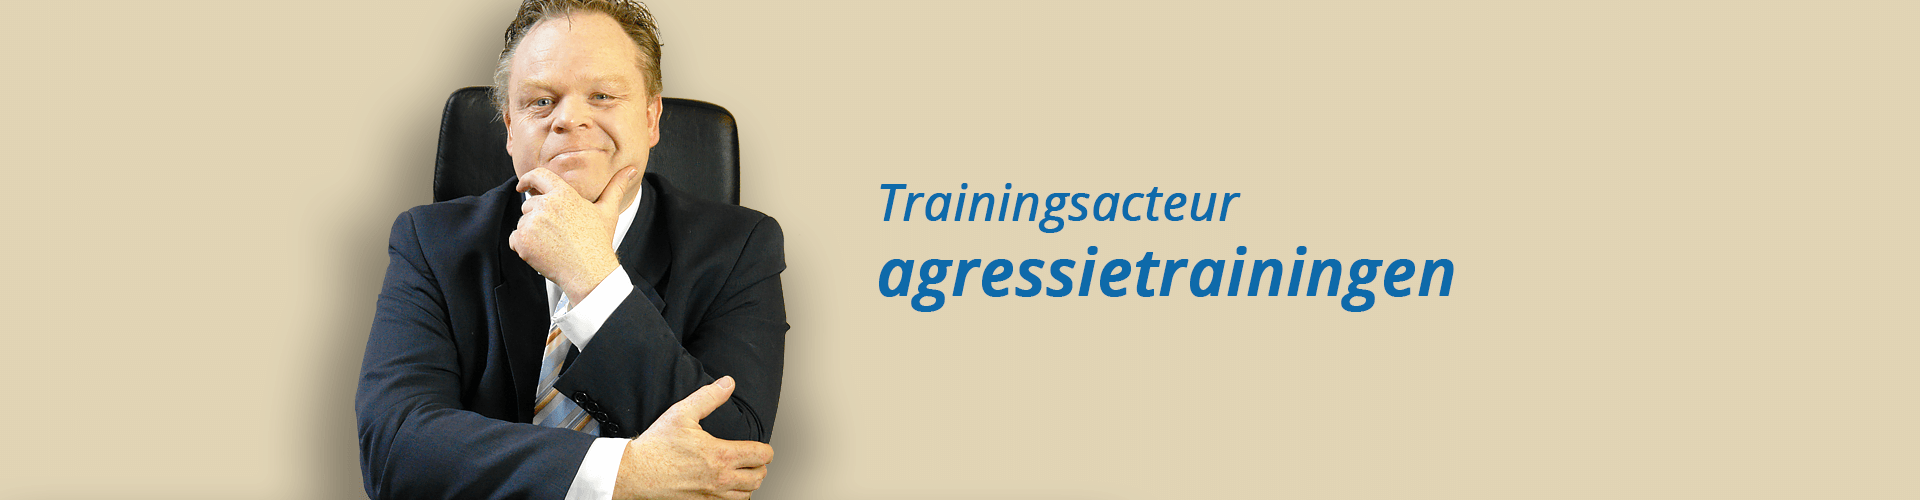 Trainingsacteur agressietrainingen